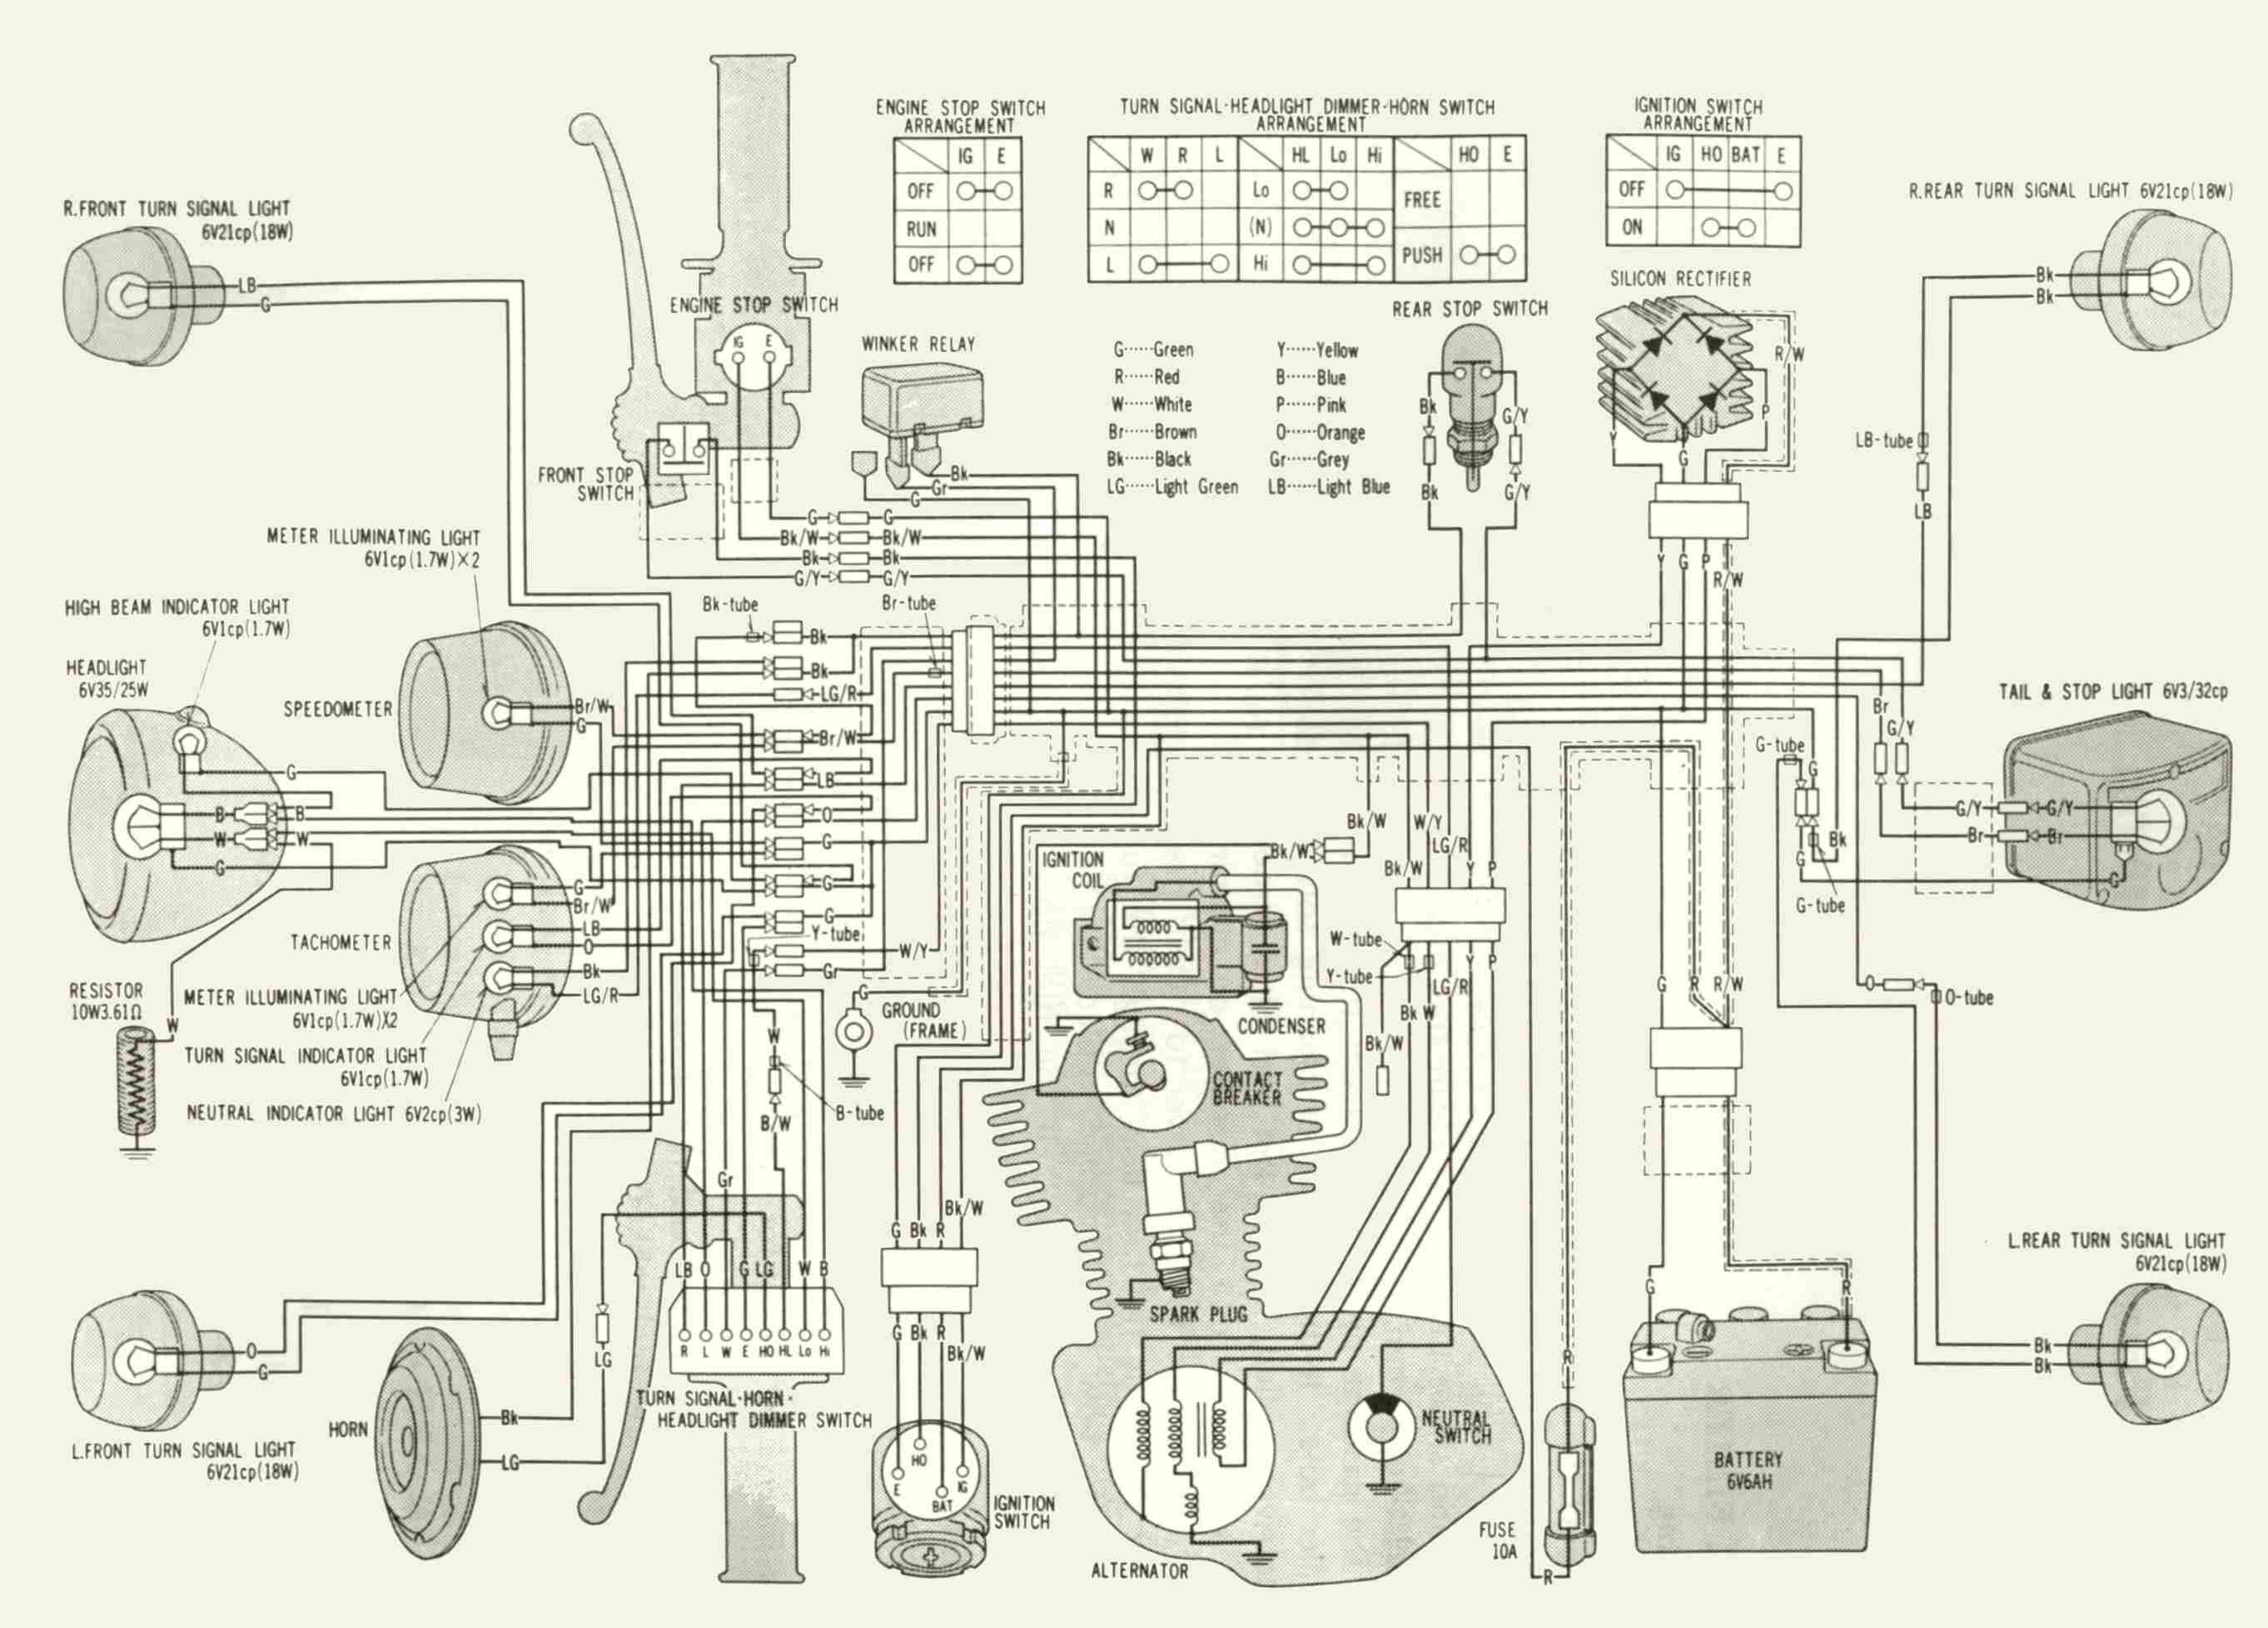 ct90 wiring diagram 1999 softail 1972 honda diagrams 1968 90 parts